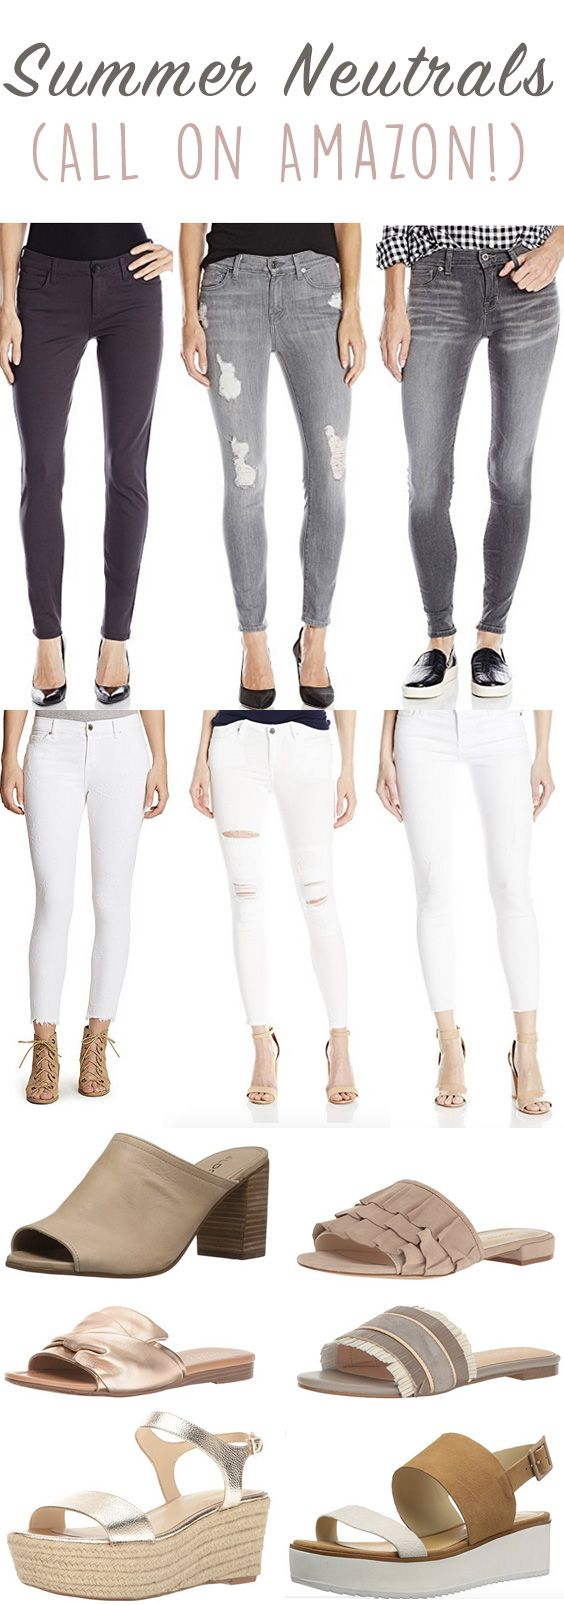 Summer Neutrals on Amazon! The best summer neutral jeans that will have you stylish all year! These soft color palettes will complete your outfits & have you looking chic. Chic summer neutrals are always in style & perfect for starting a capsule wardrobe. Classy neutral sandals,   stylish pants & the best white jeans.